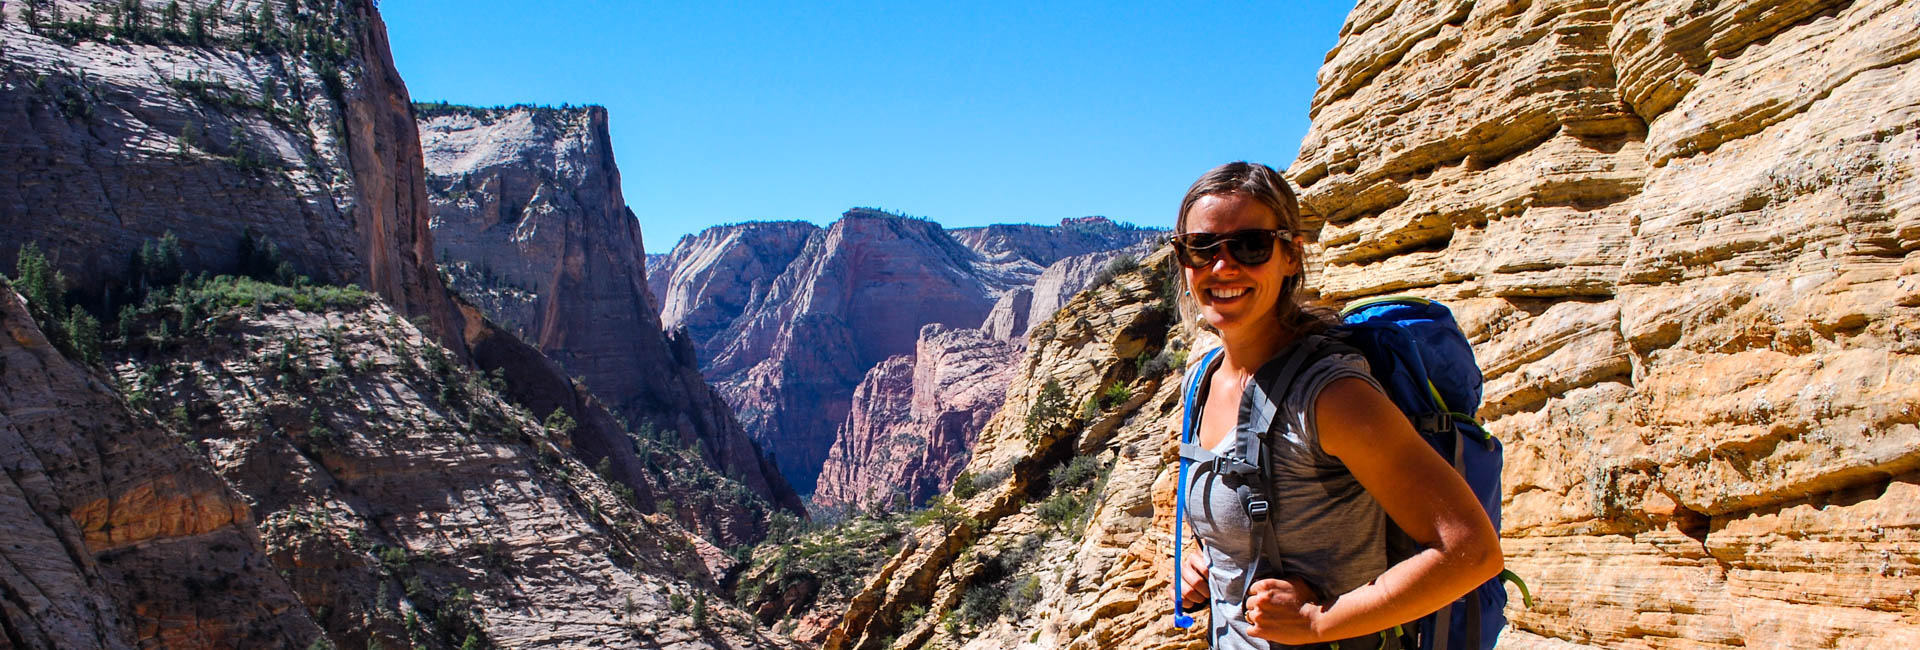 Solo hiker at Zion National Park